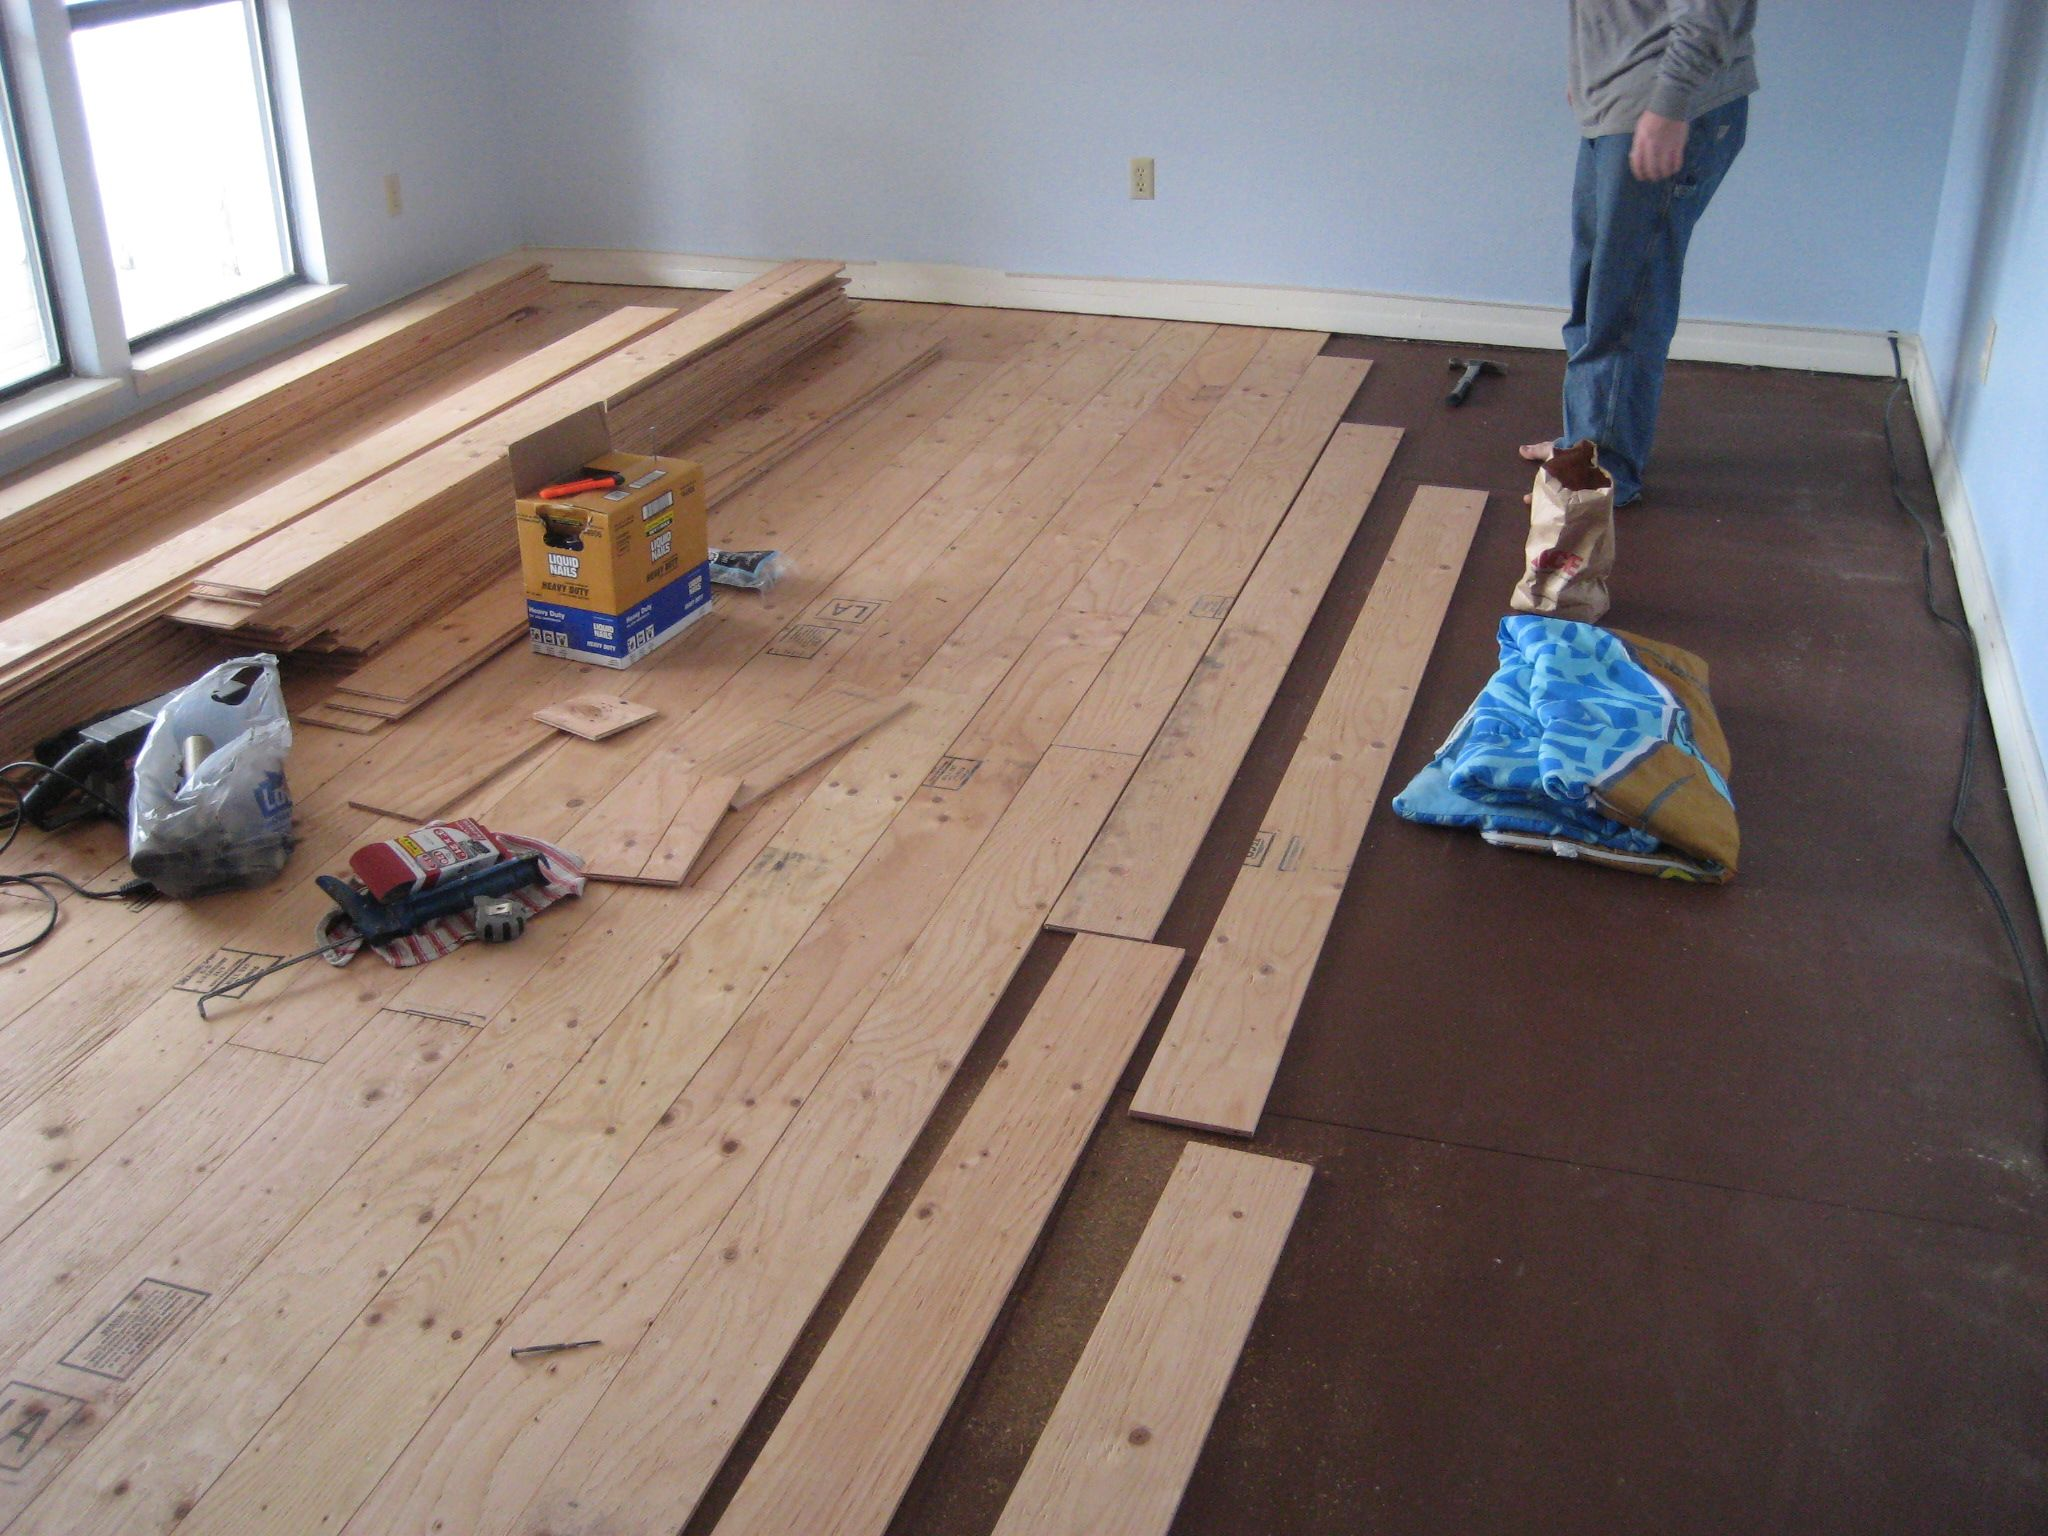 Real Wood Floors Made From Plywood Diy Wood Floors Plywood Flooring Diy Diy Flooring